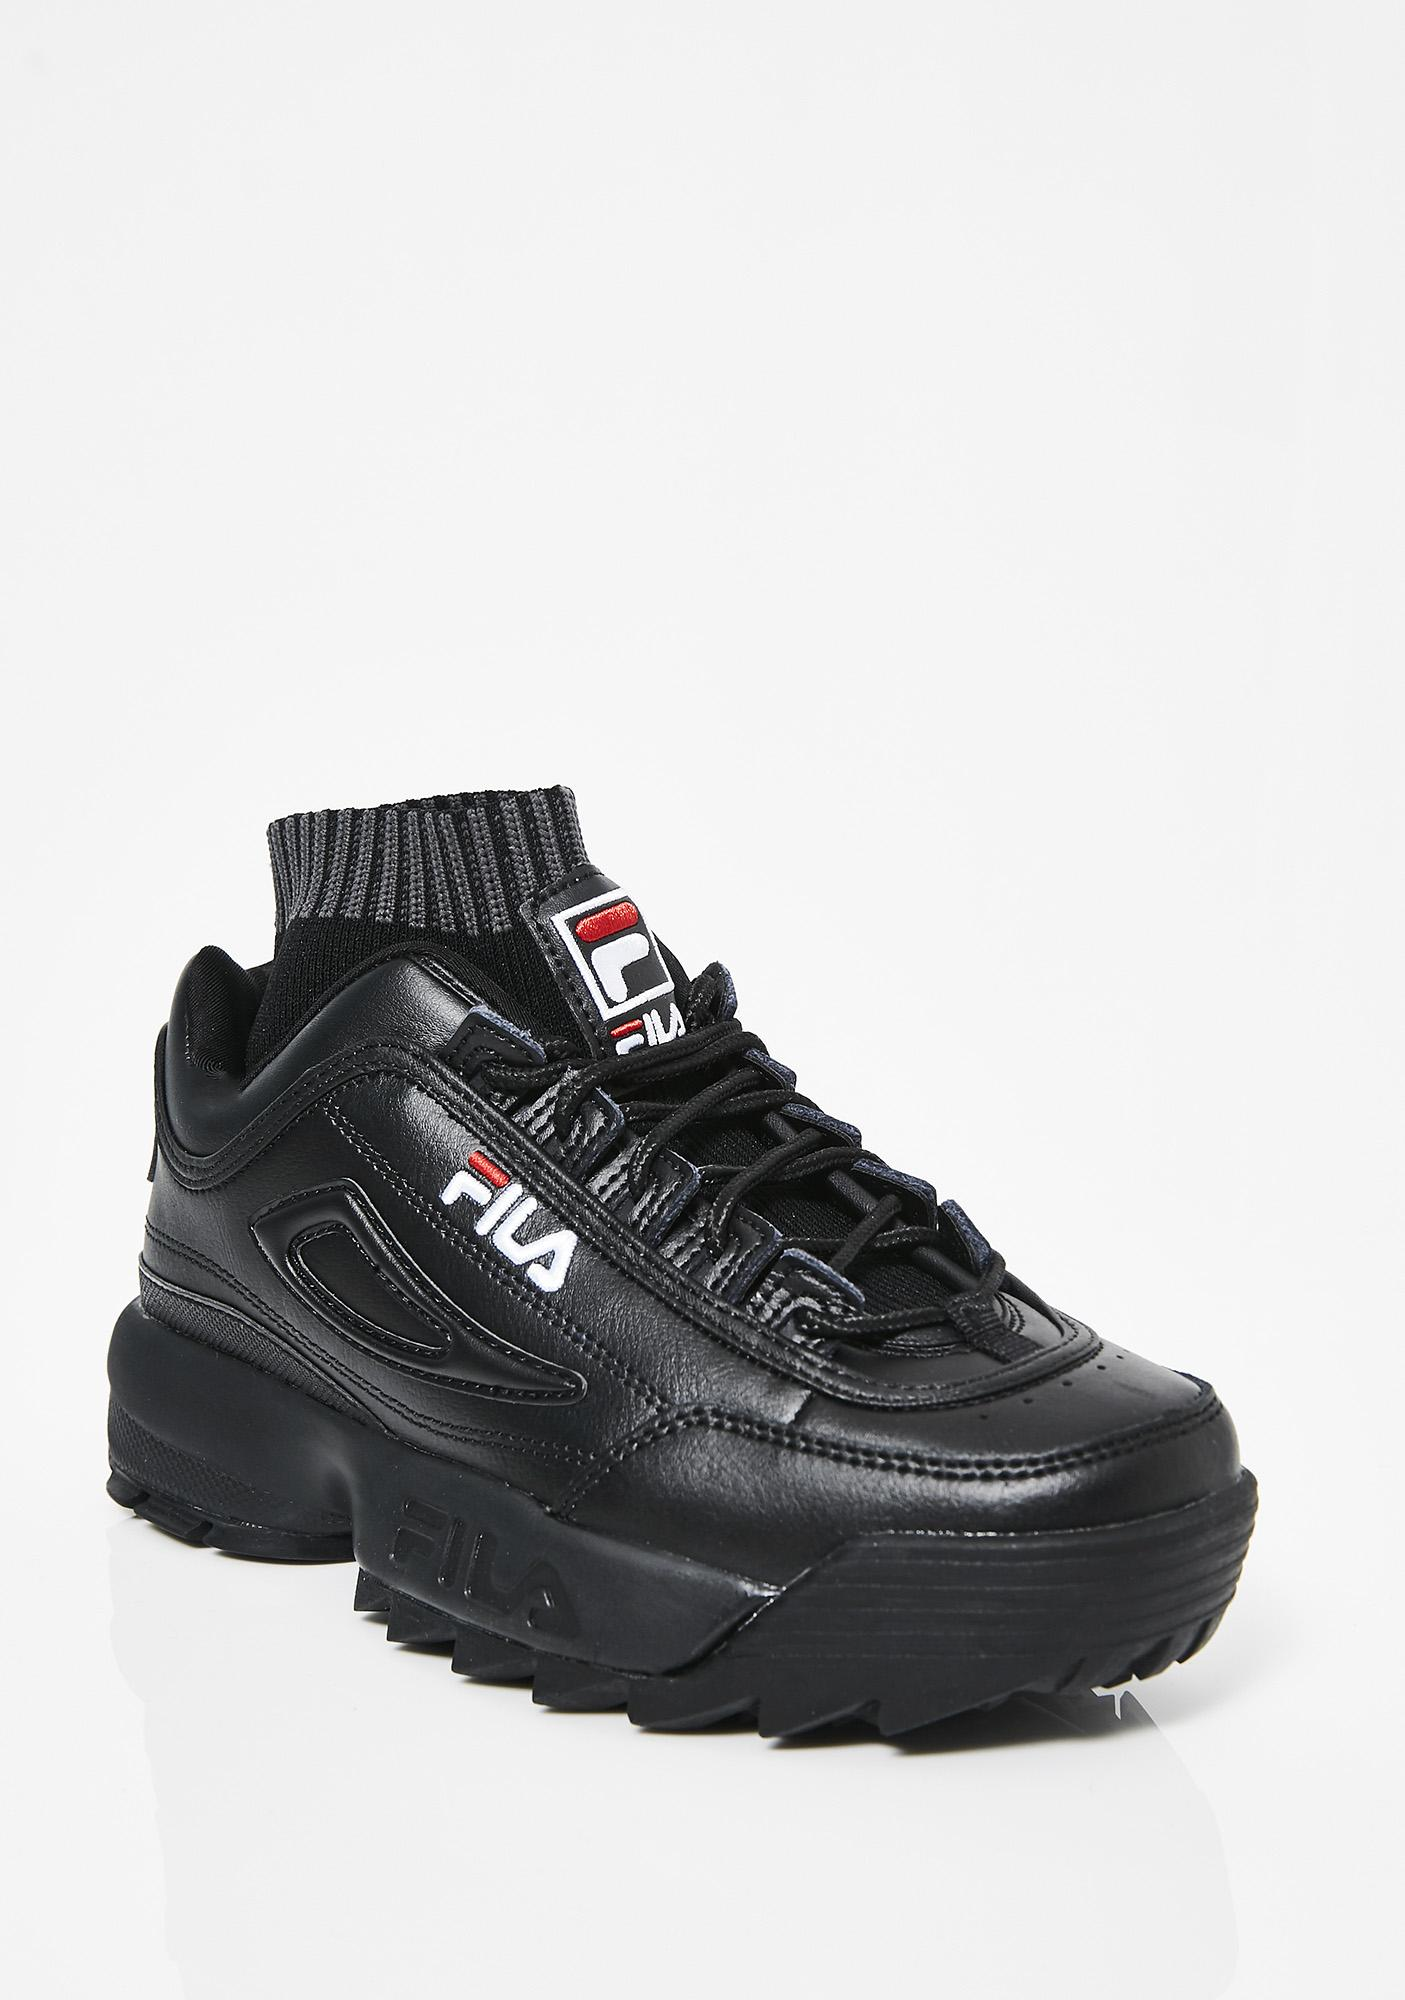 Dark Disruptor Evo Sockfit Sneakers by Fila